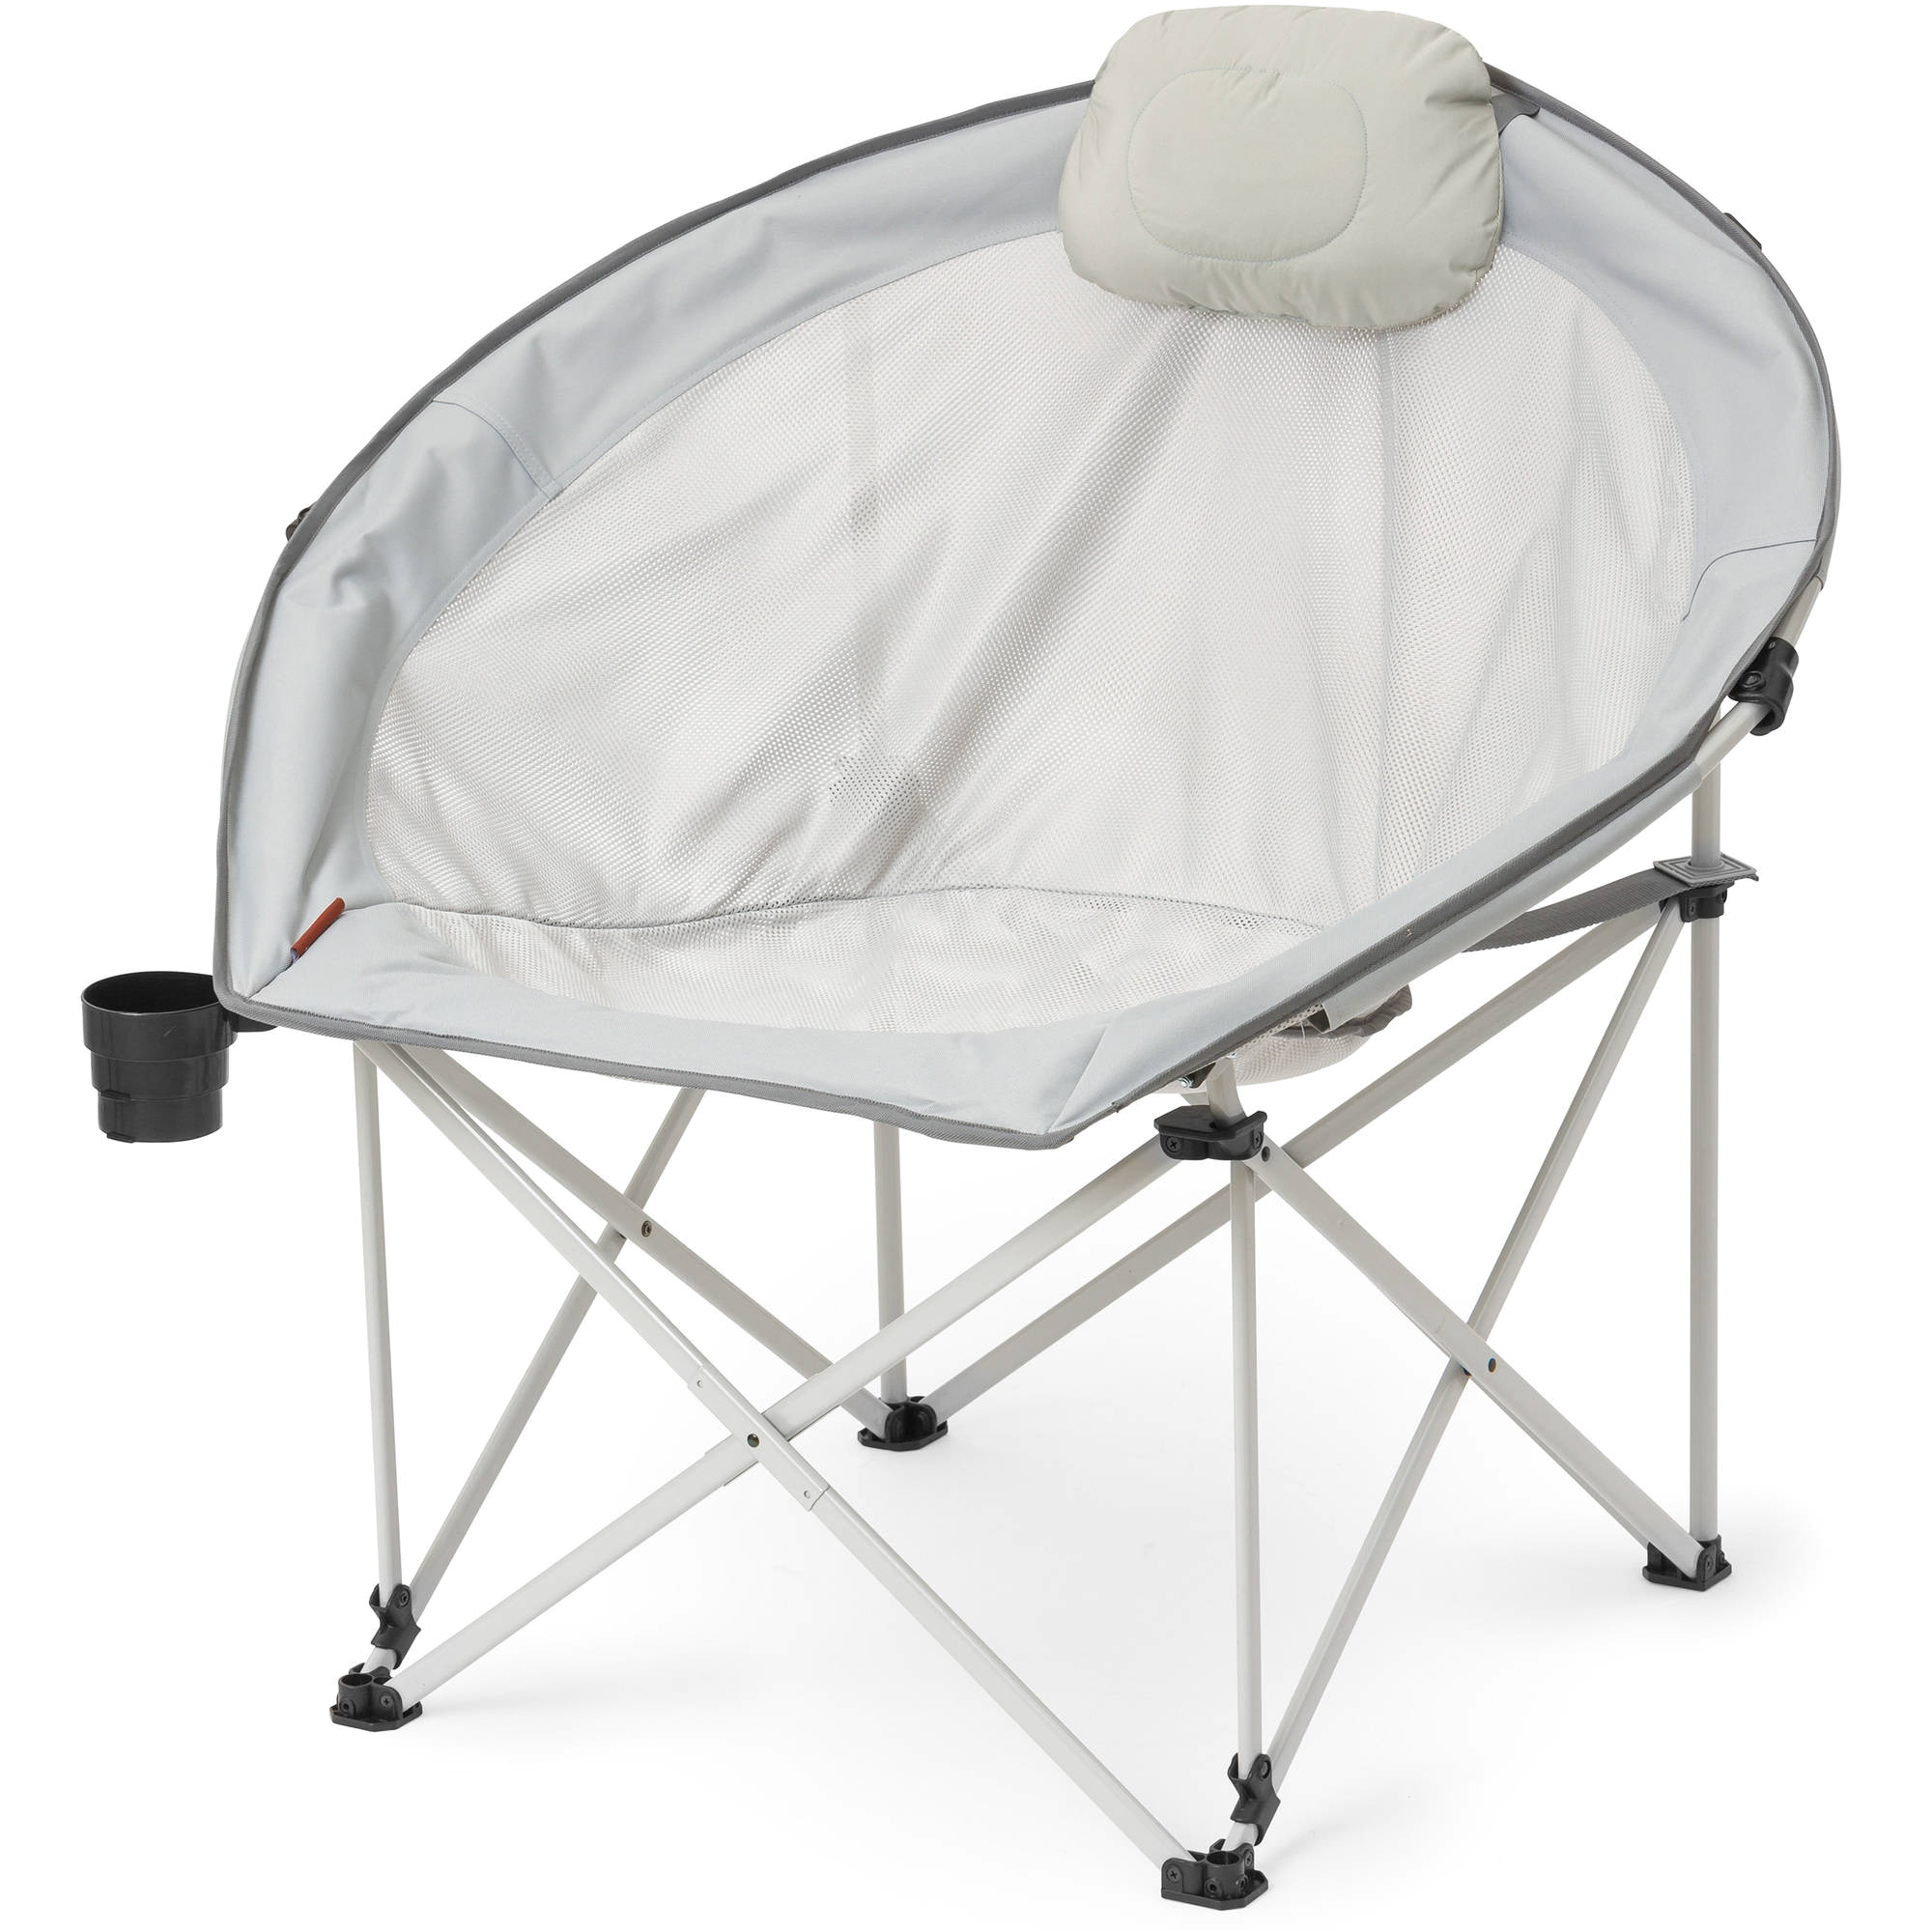 Walmart Steel Transport Chair Oversized Camping Chairs